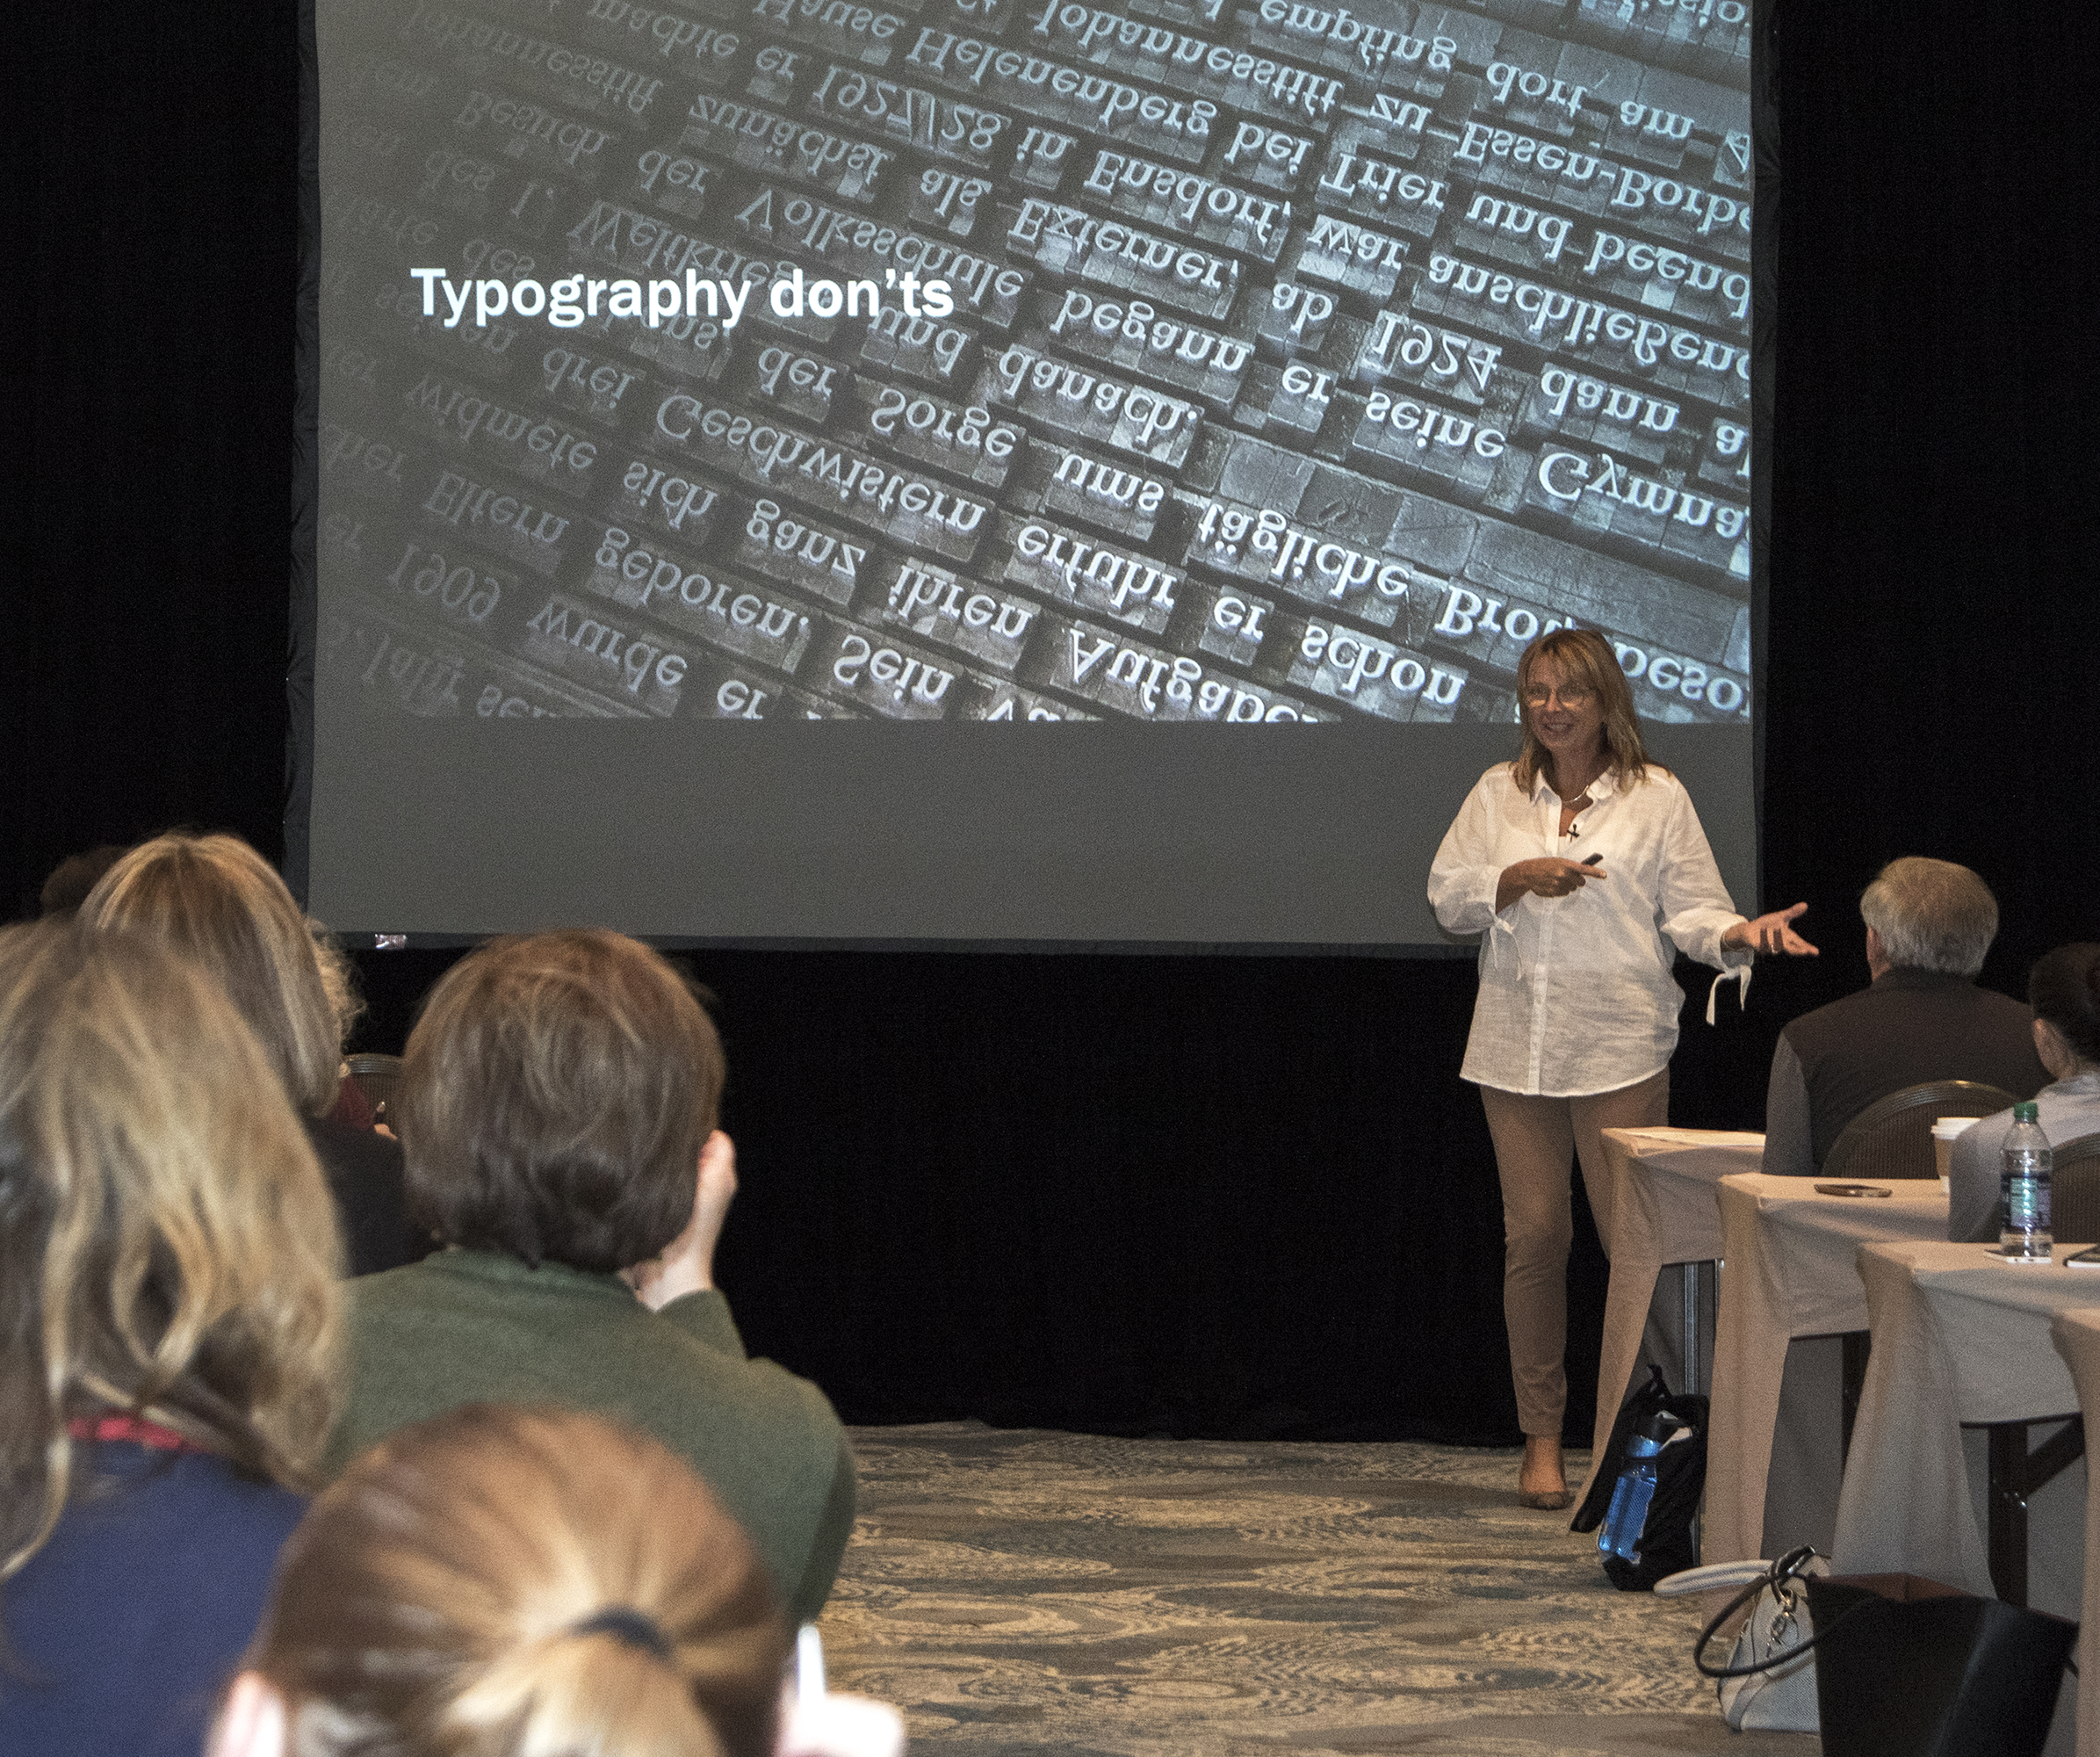 Julie presenting a typography session at the Presentation Summit